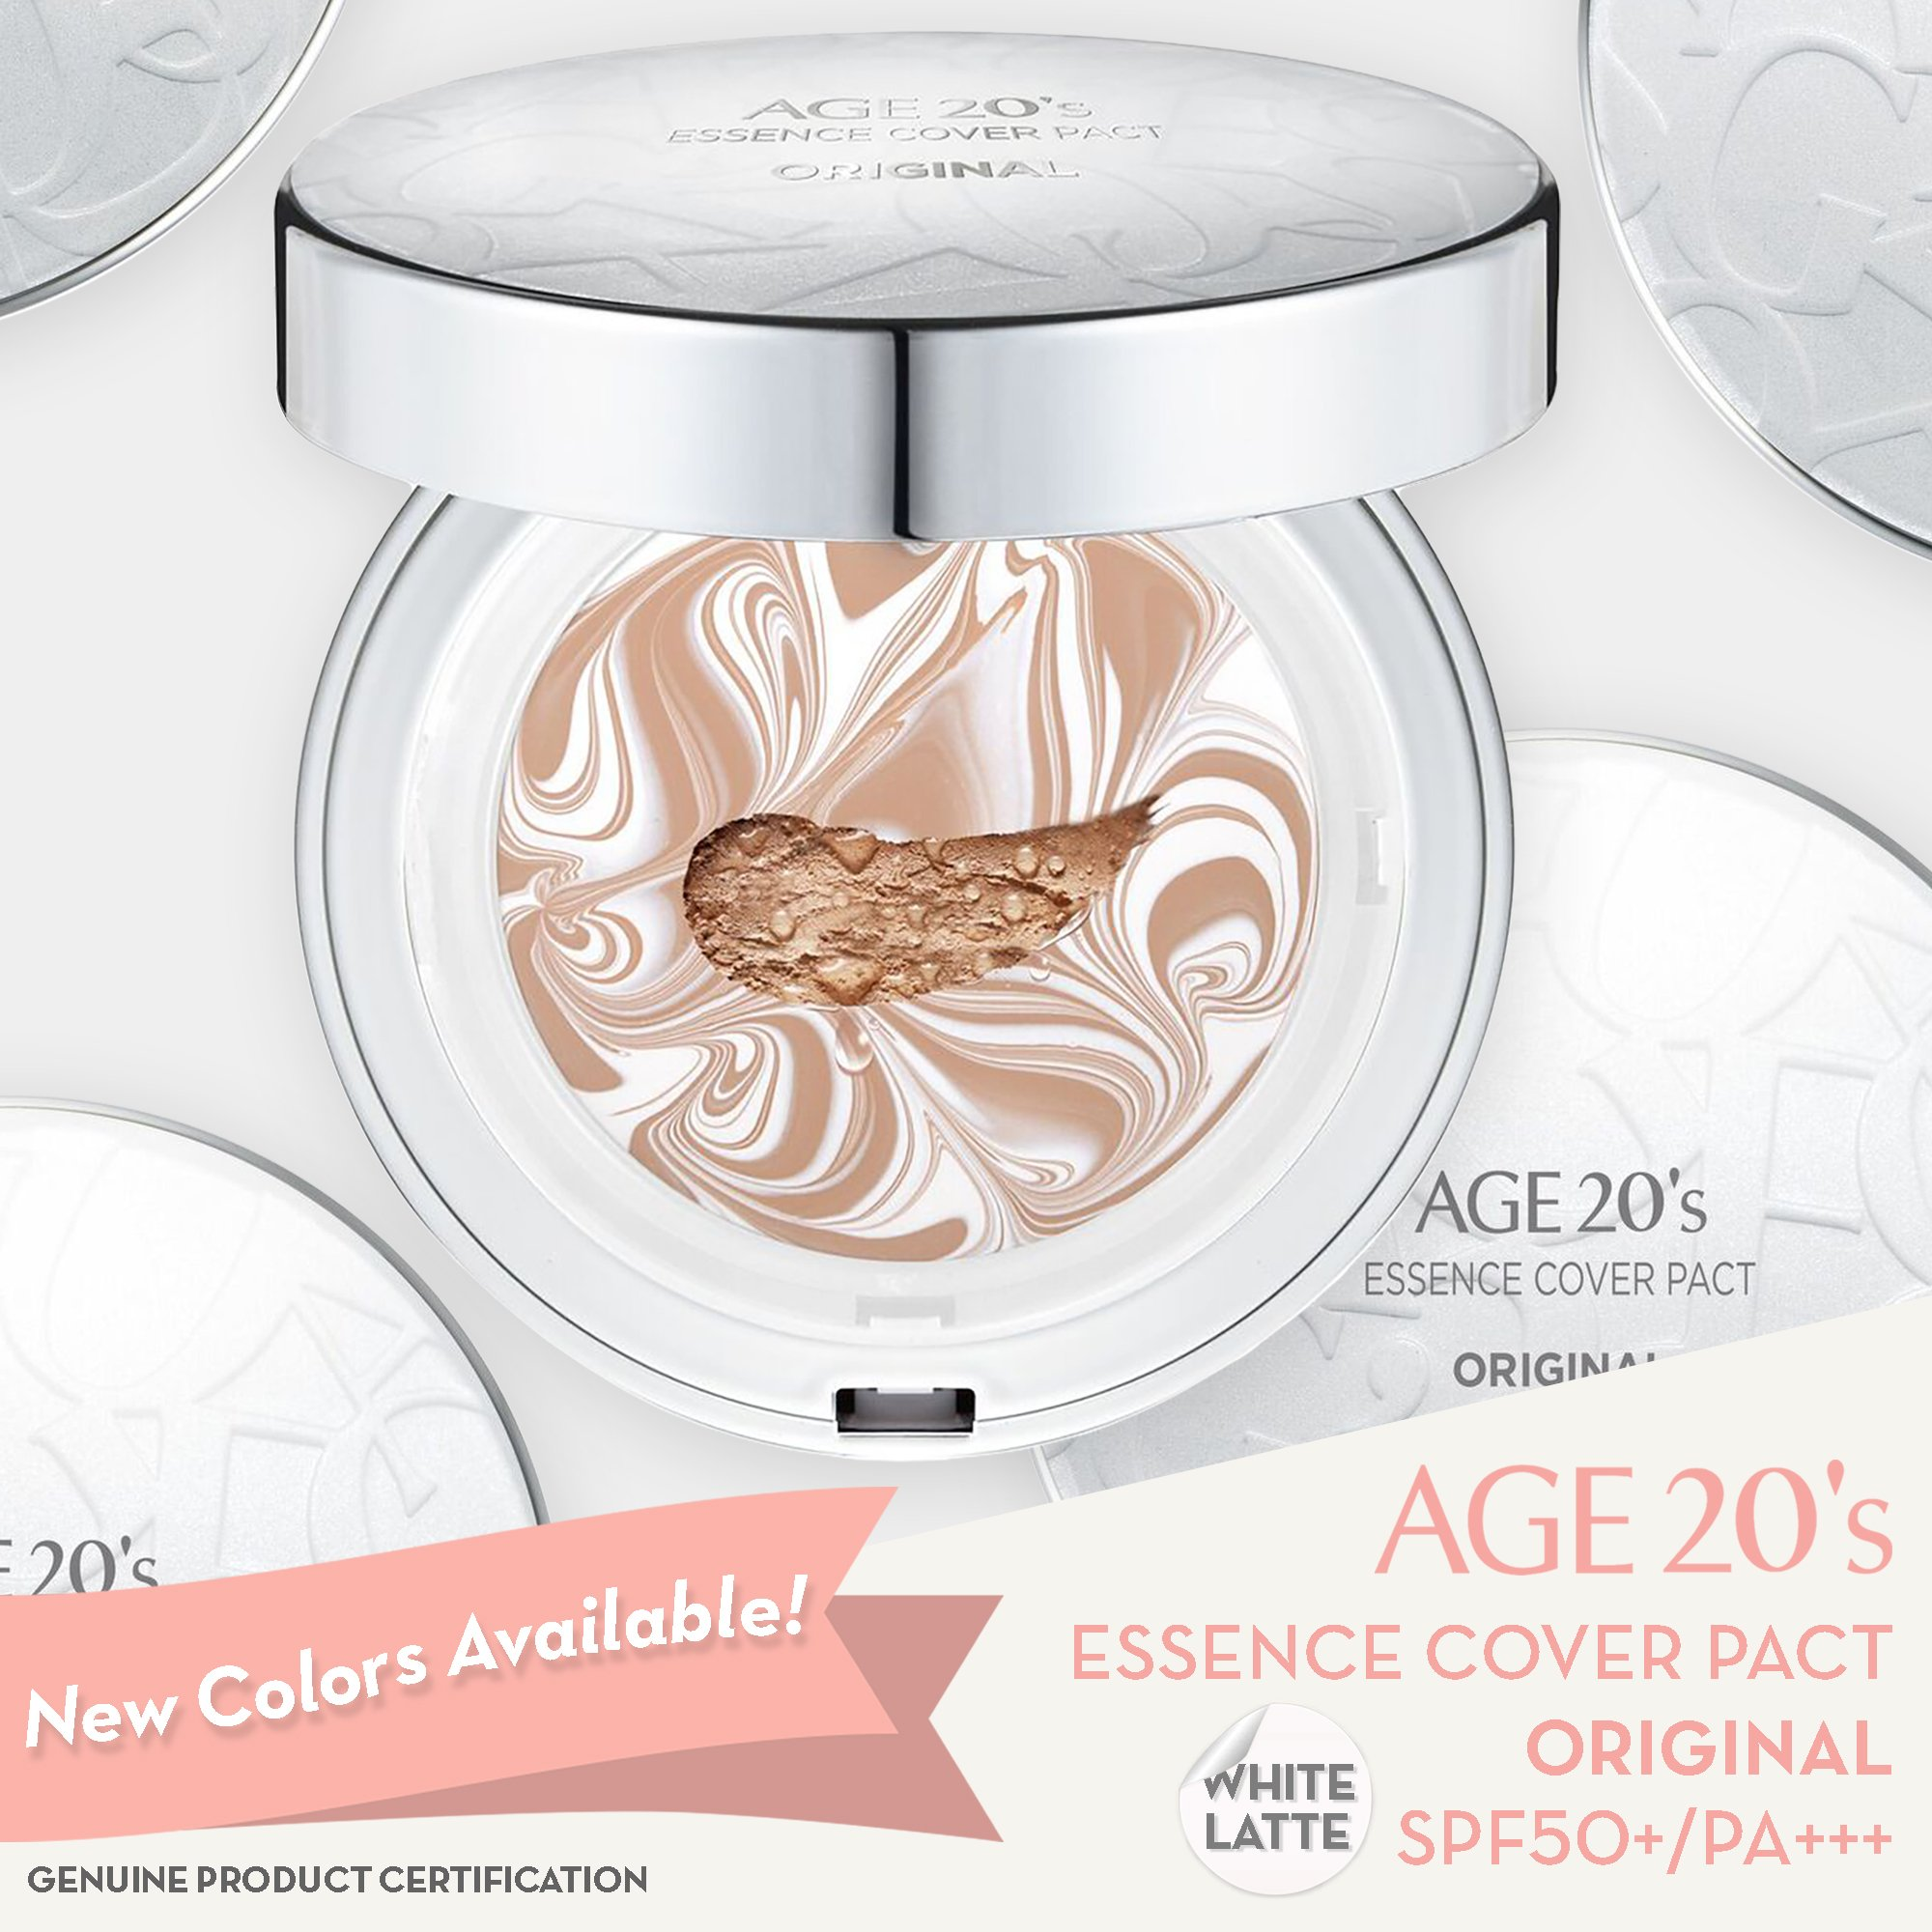 Age 20 s pact Foundation Premium Makeup 1 Extra Refill White Latte Essence Cover